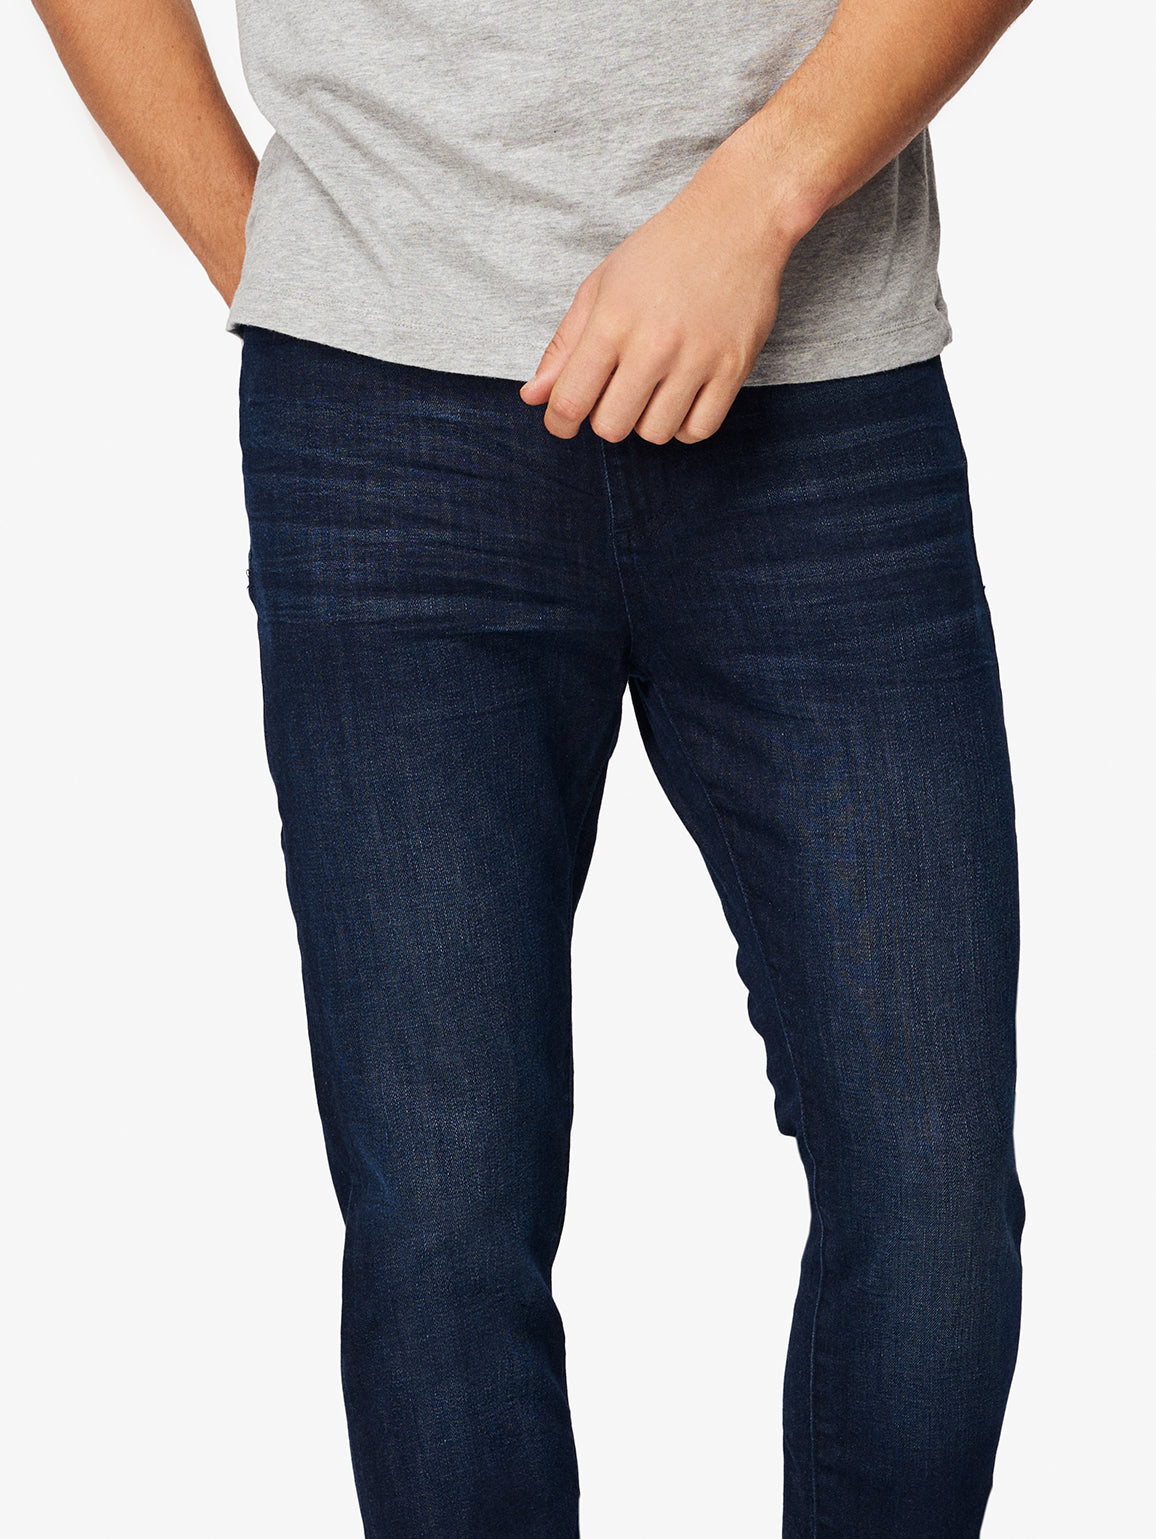 Men - Dark Blue Slim Denim - Cooper Tapered Slim Sepia - DL1961